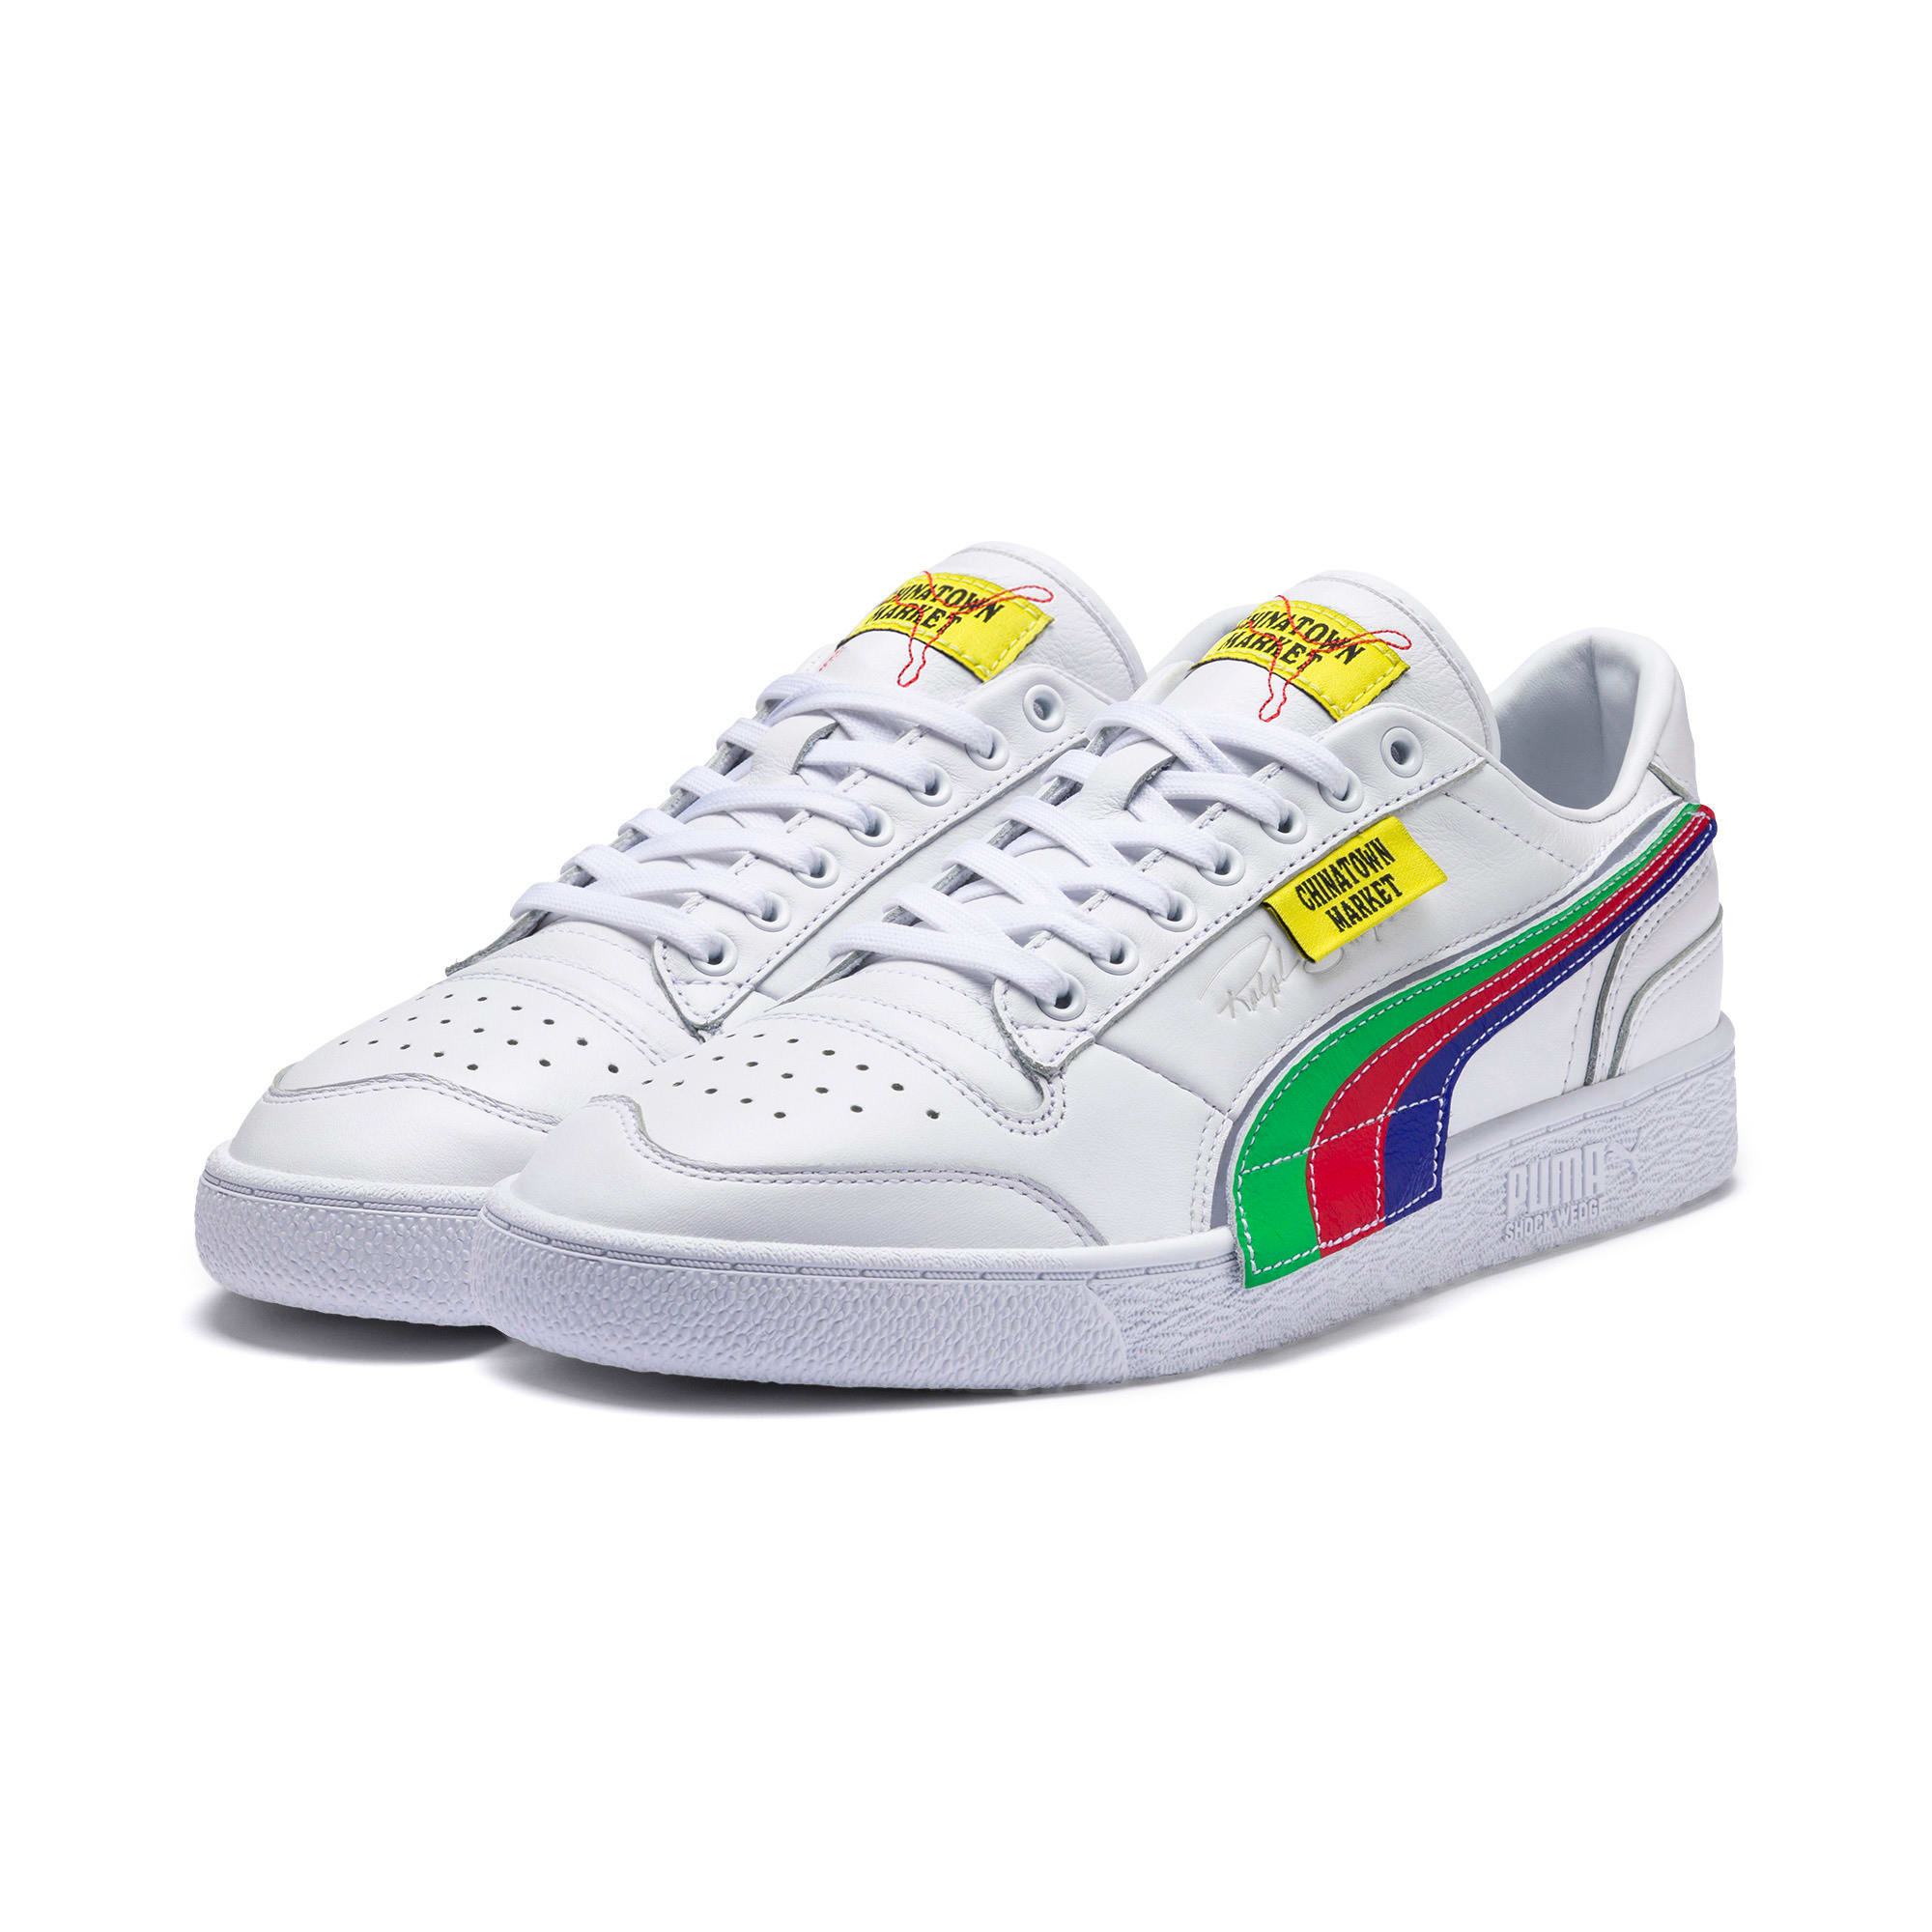 Thumbnail 2 of PUMA x CHINATOWN MARKET ラルフ サンプソン ローカット スニーカー, Puma White, medium-JPN